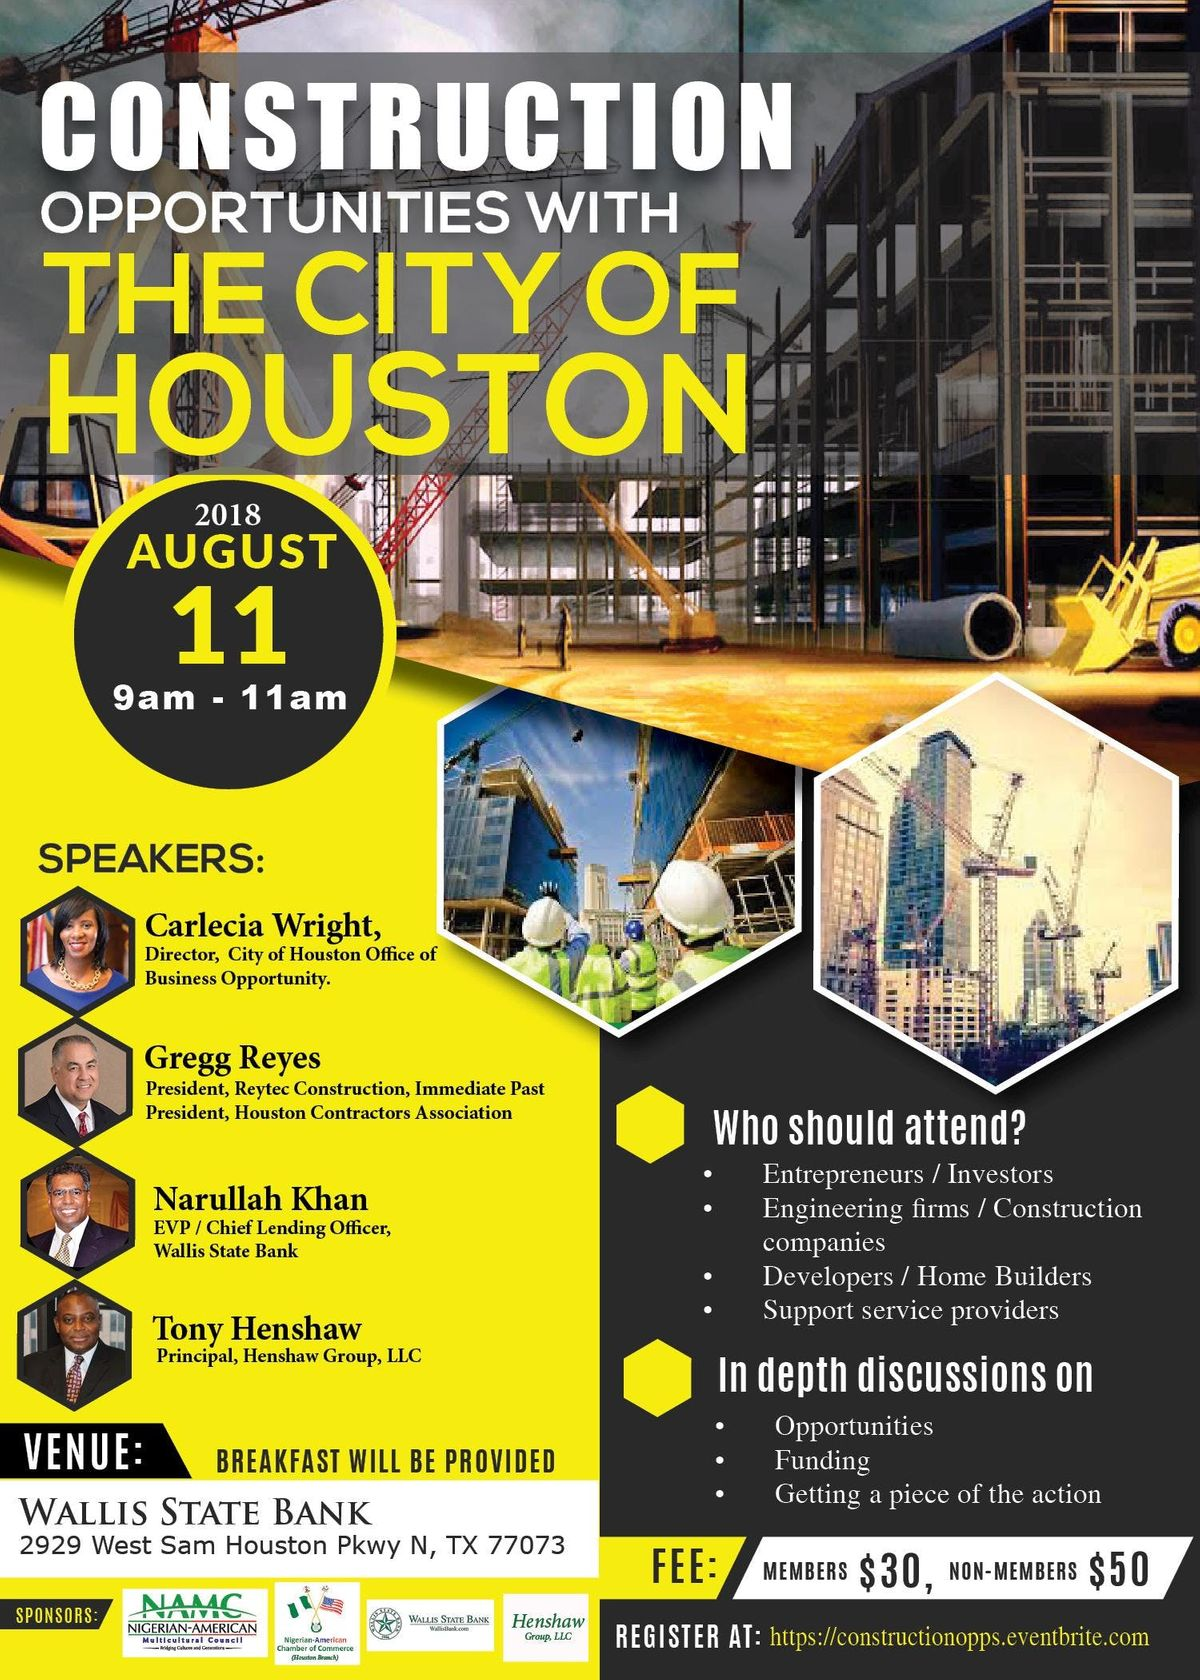 Construction Opportunities with the City of Houston at Wallis State